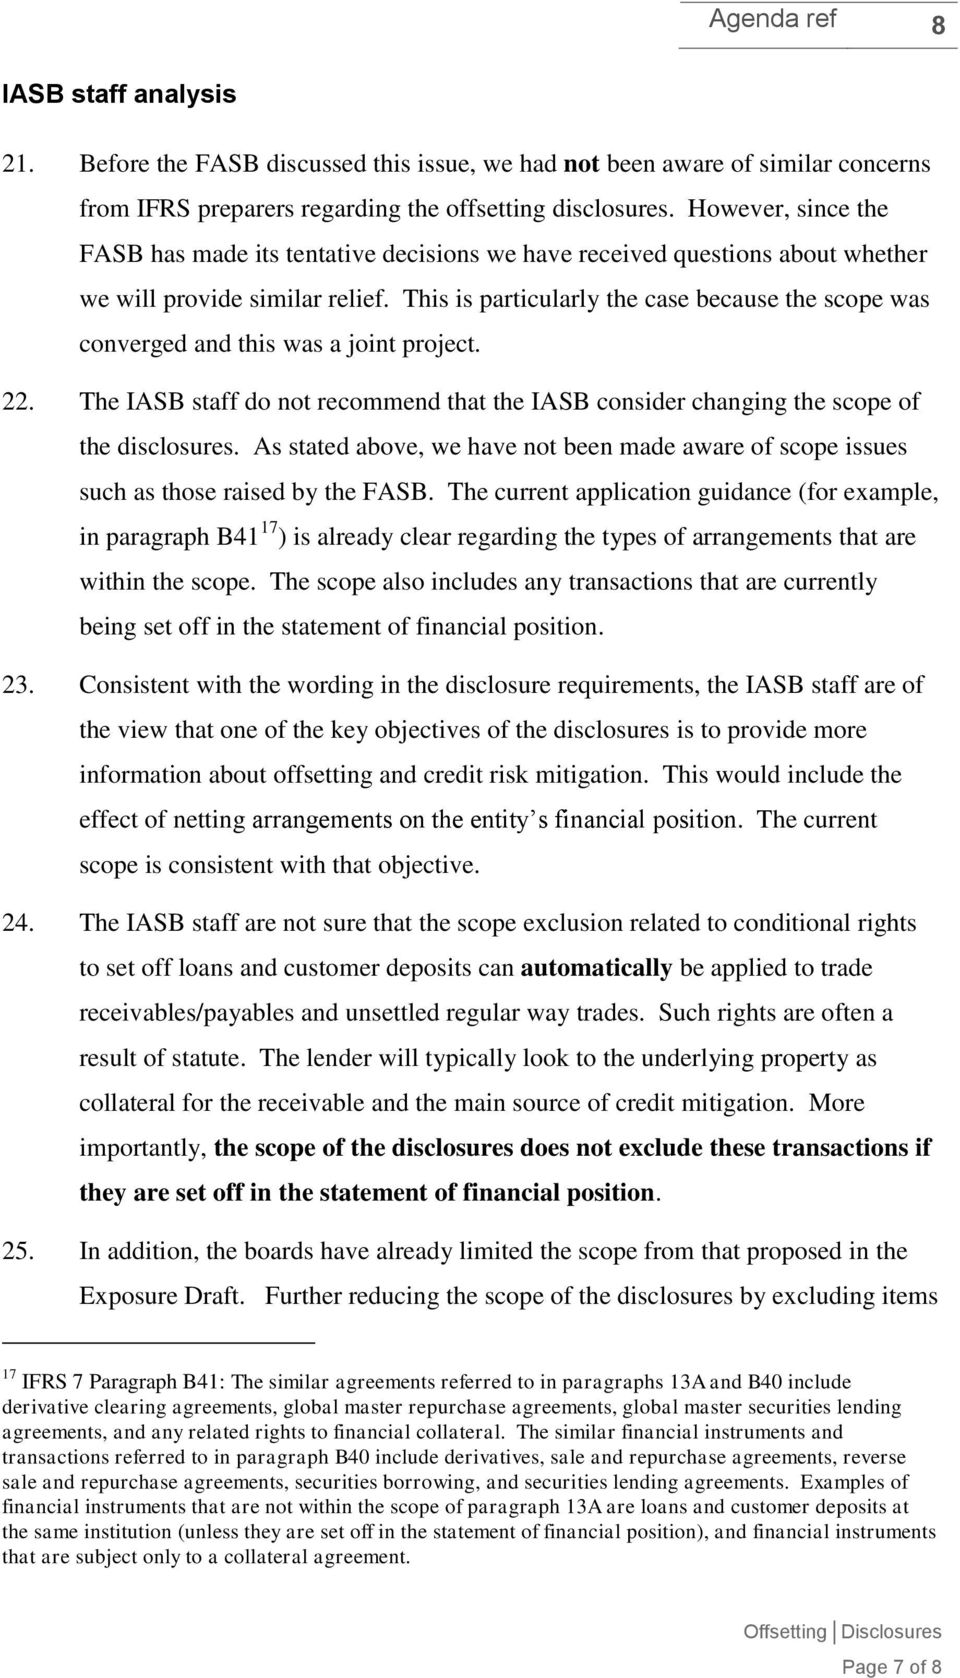 This is particularly the case because the scope was converged and this was a joint project. 22. The IASB staff do not recommend that the IASB consider changing the scope of the disclosures.